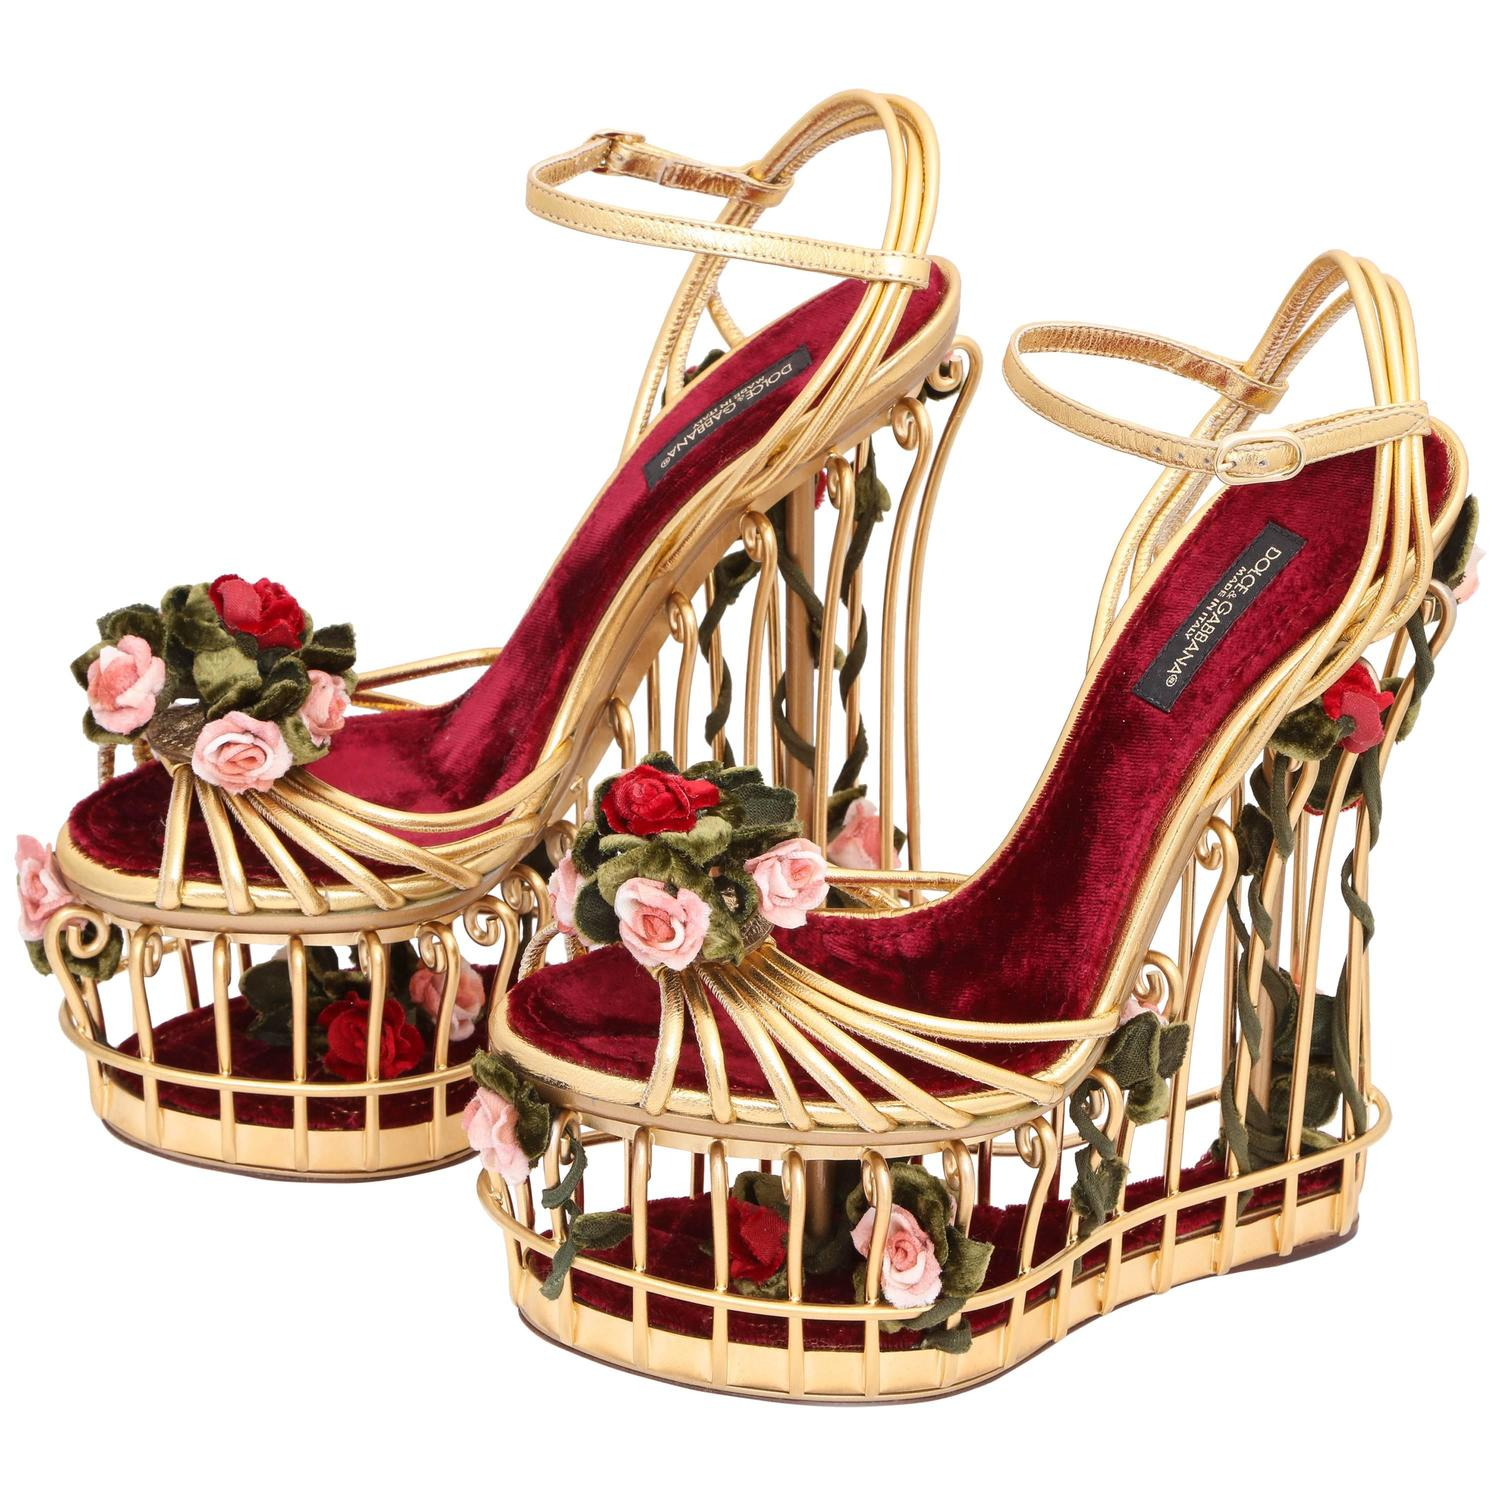 dd70abf960 Very rare Dolce and Gabbana Runway Cage Heel Shoes Piece of Art! at 1stdibs